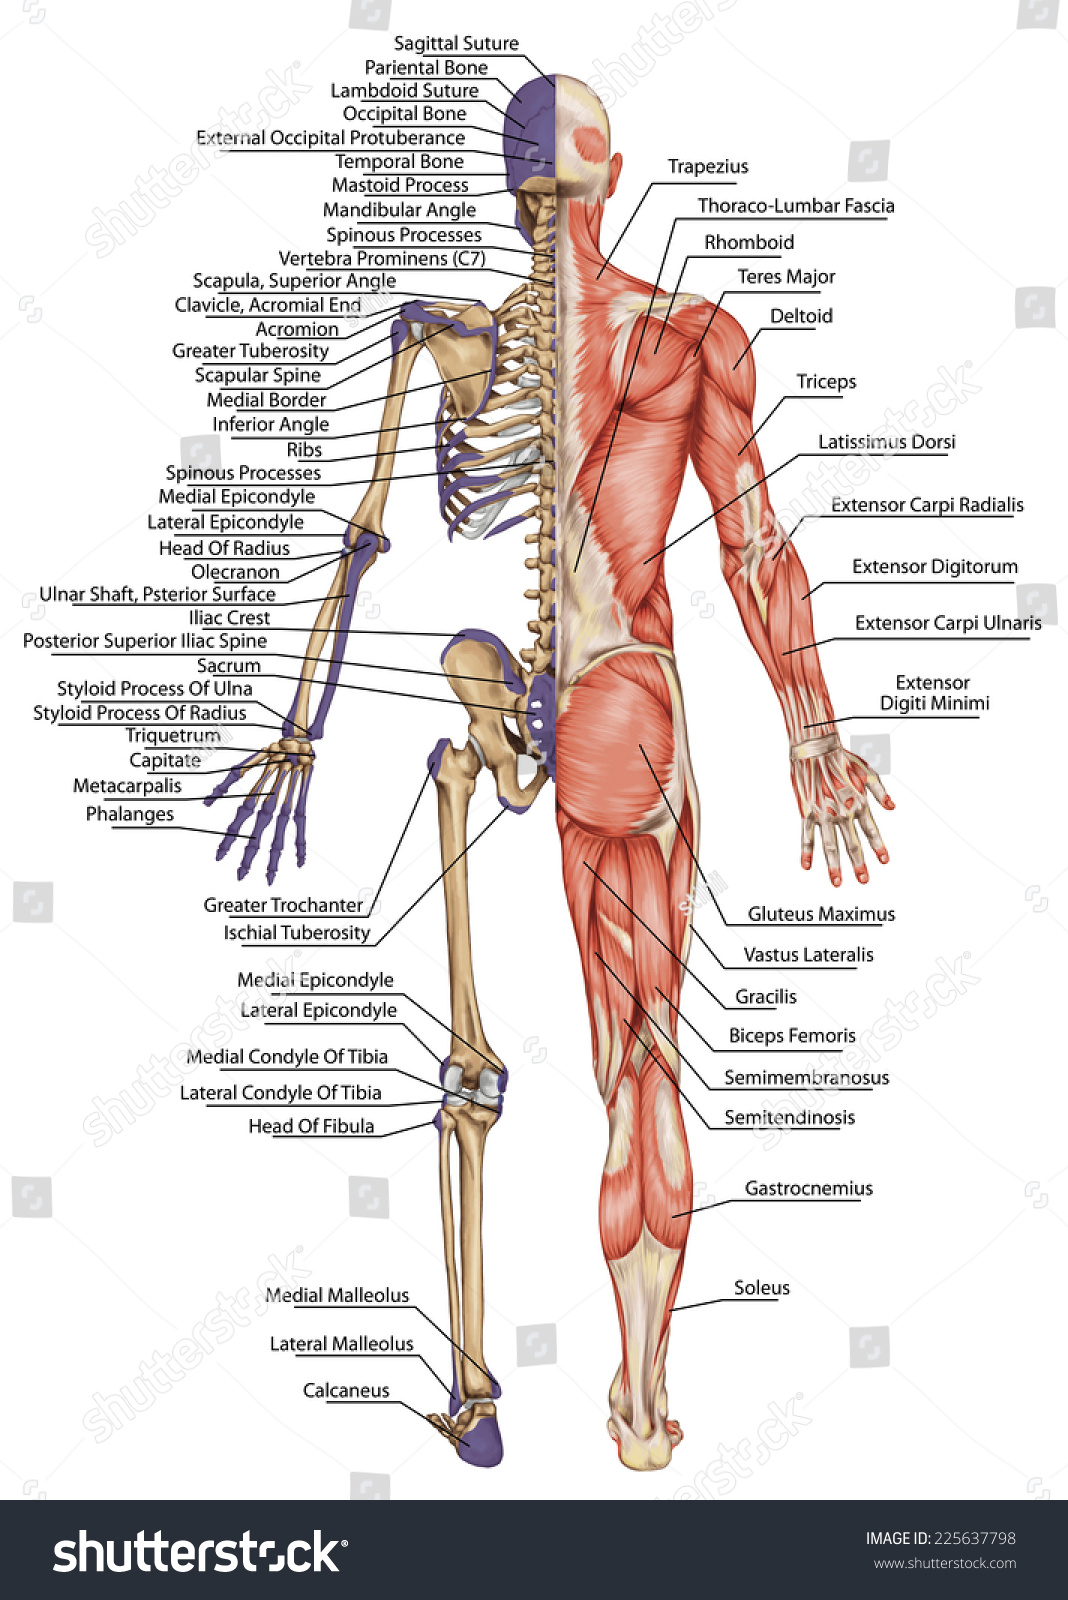 Royalty Free Anatomical Body Human Skeleton 225637798 Stock